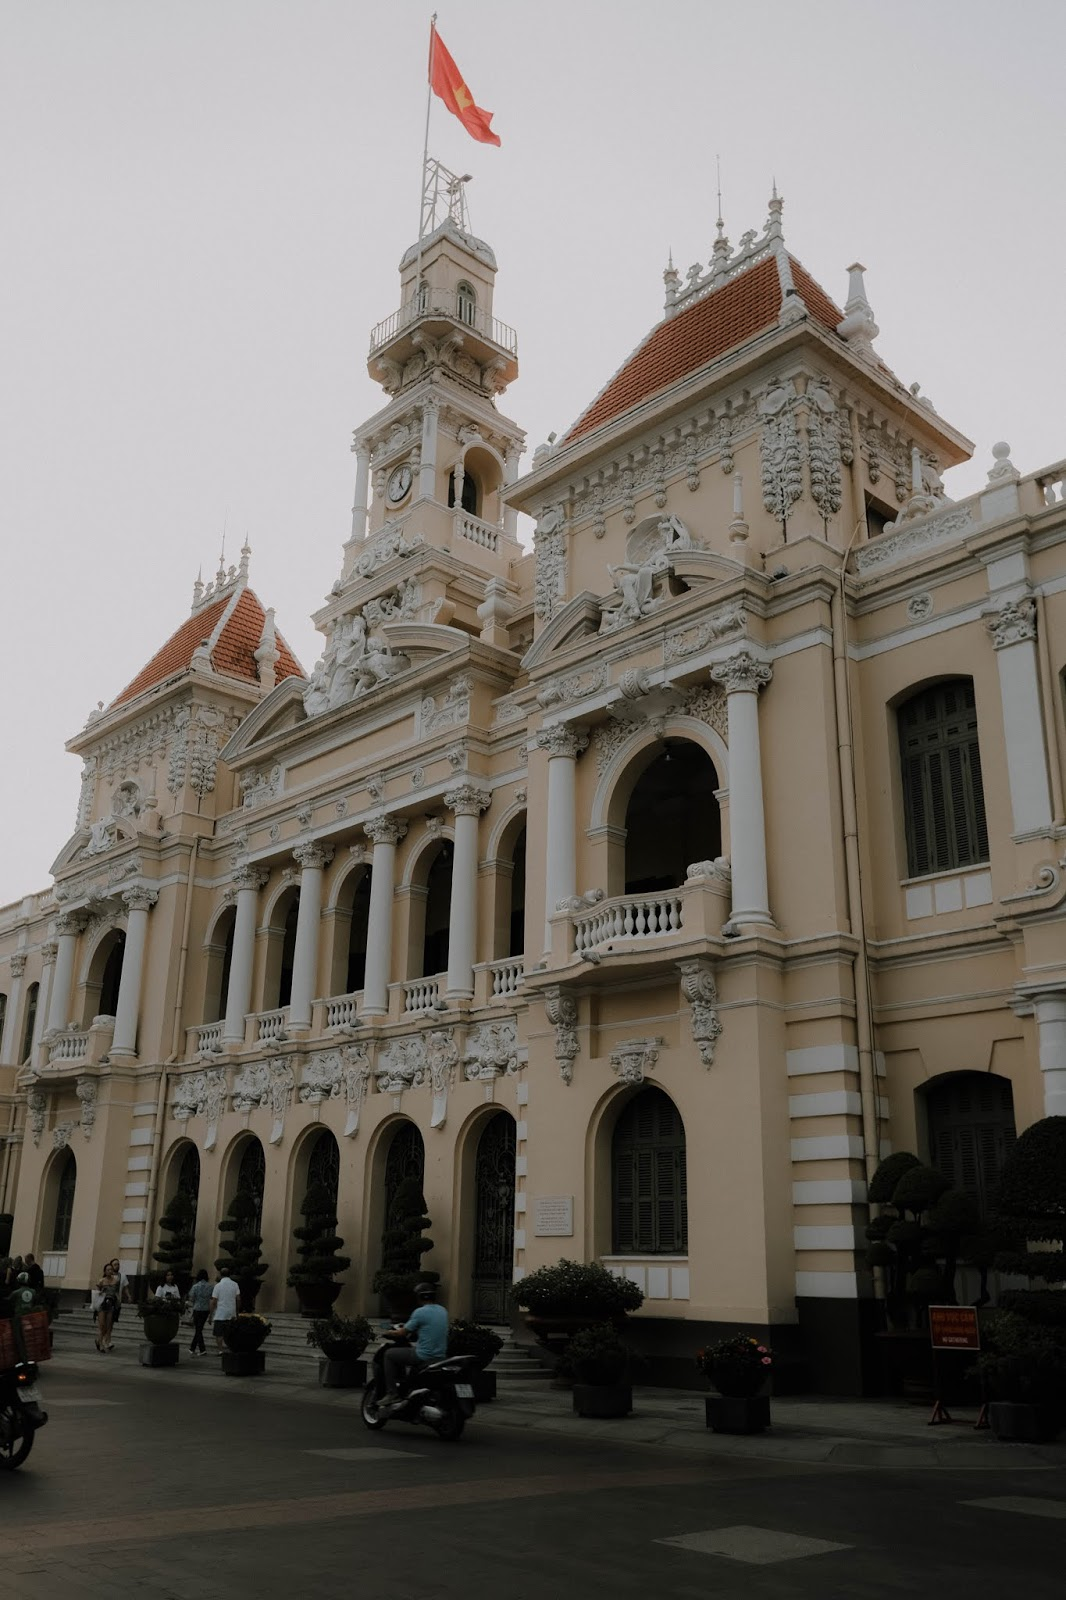 Bash Harry of Hey Bash, a Brunei life & style travel blog, shows you the best places to go in Ho Chi Minh City (also known as Saigon), Vietnam under 1 day in this travel guide